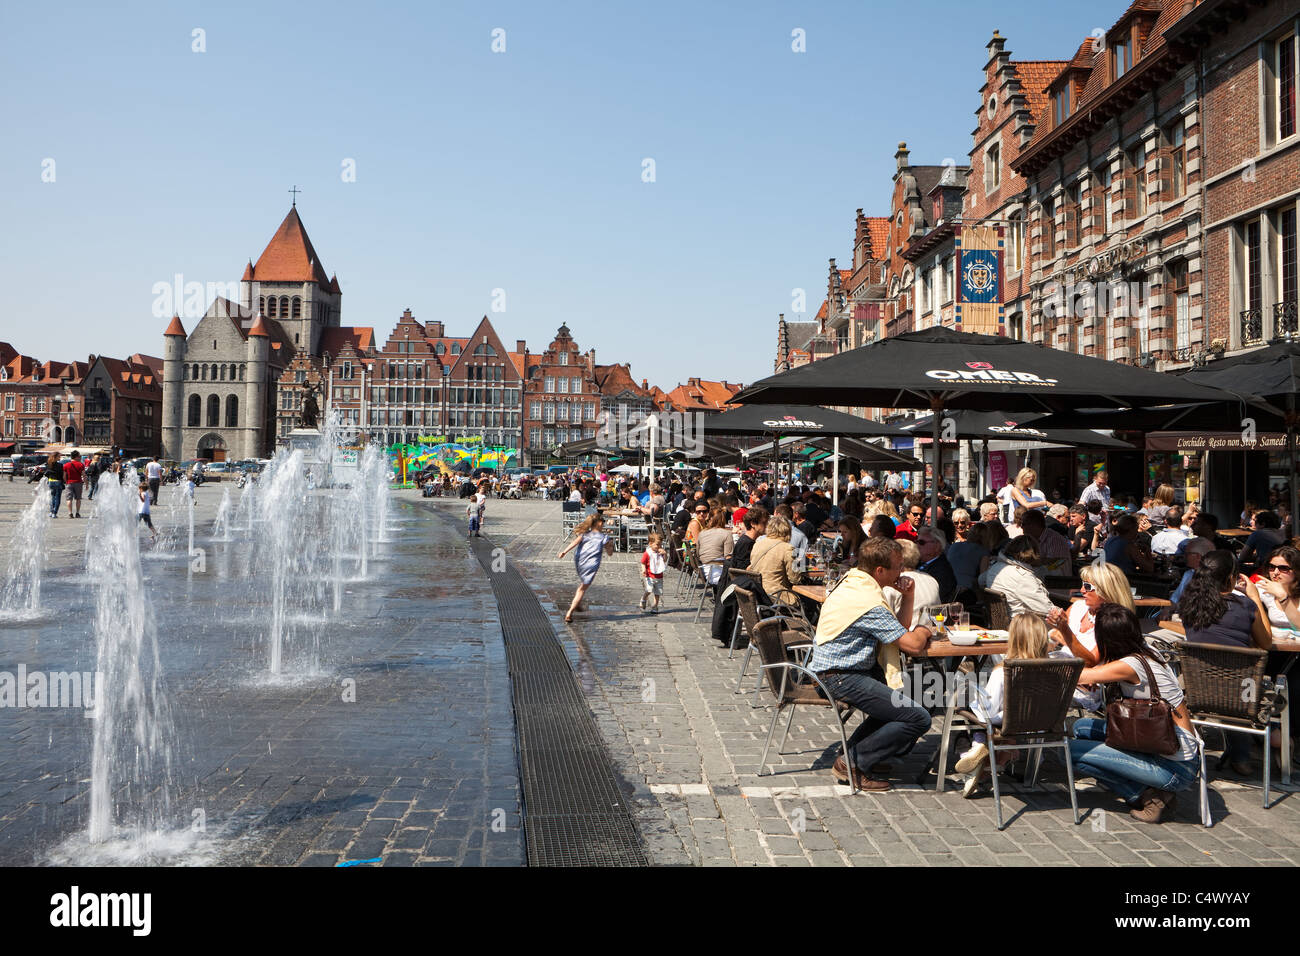 grand place st quentin tournai hainaut wallonia belgium europe stock photo 37449635 alamy. Black Bedroom Furniture Sets. Home Design Ideas